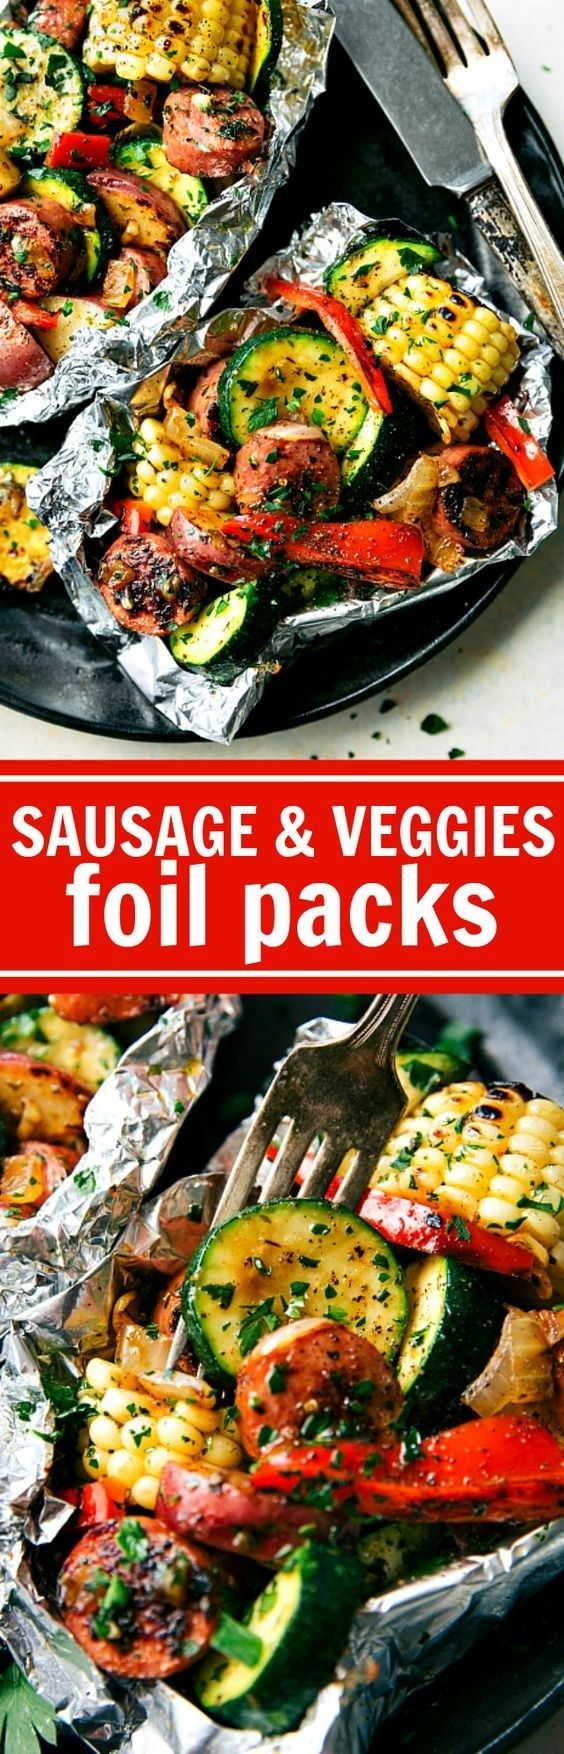 Grilled Sausage and Summer Vegetable Foil Packets